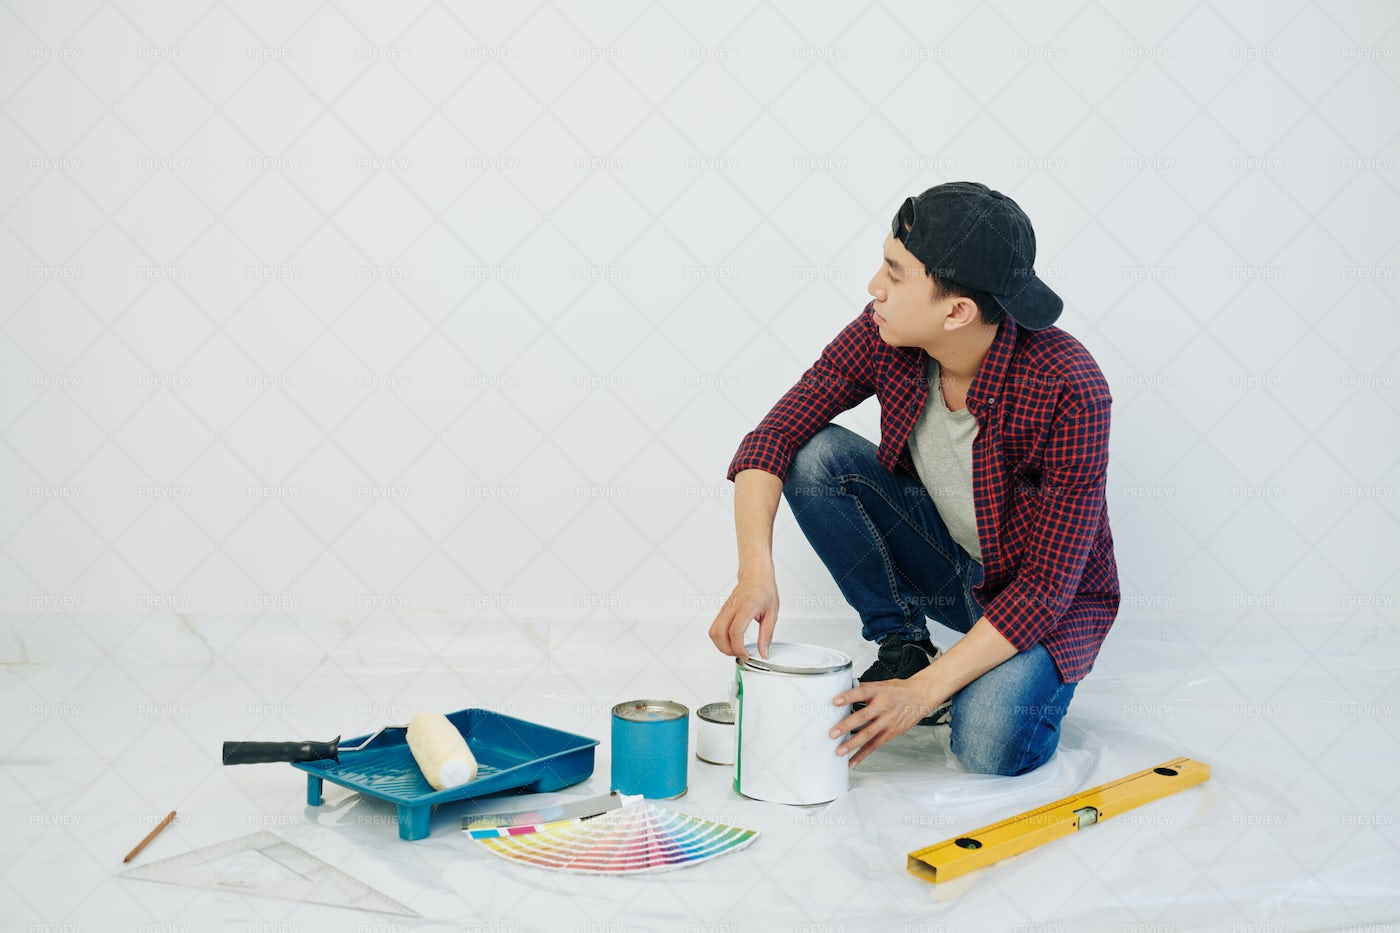 Man Opening Can Of Paint: Stock Photos